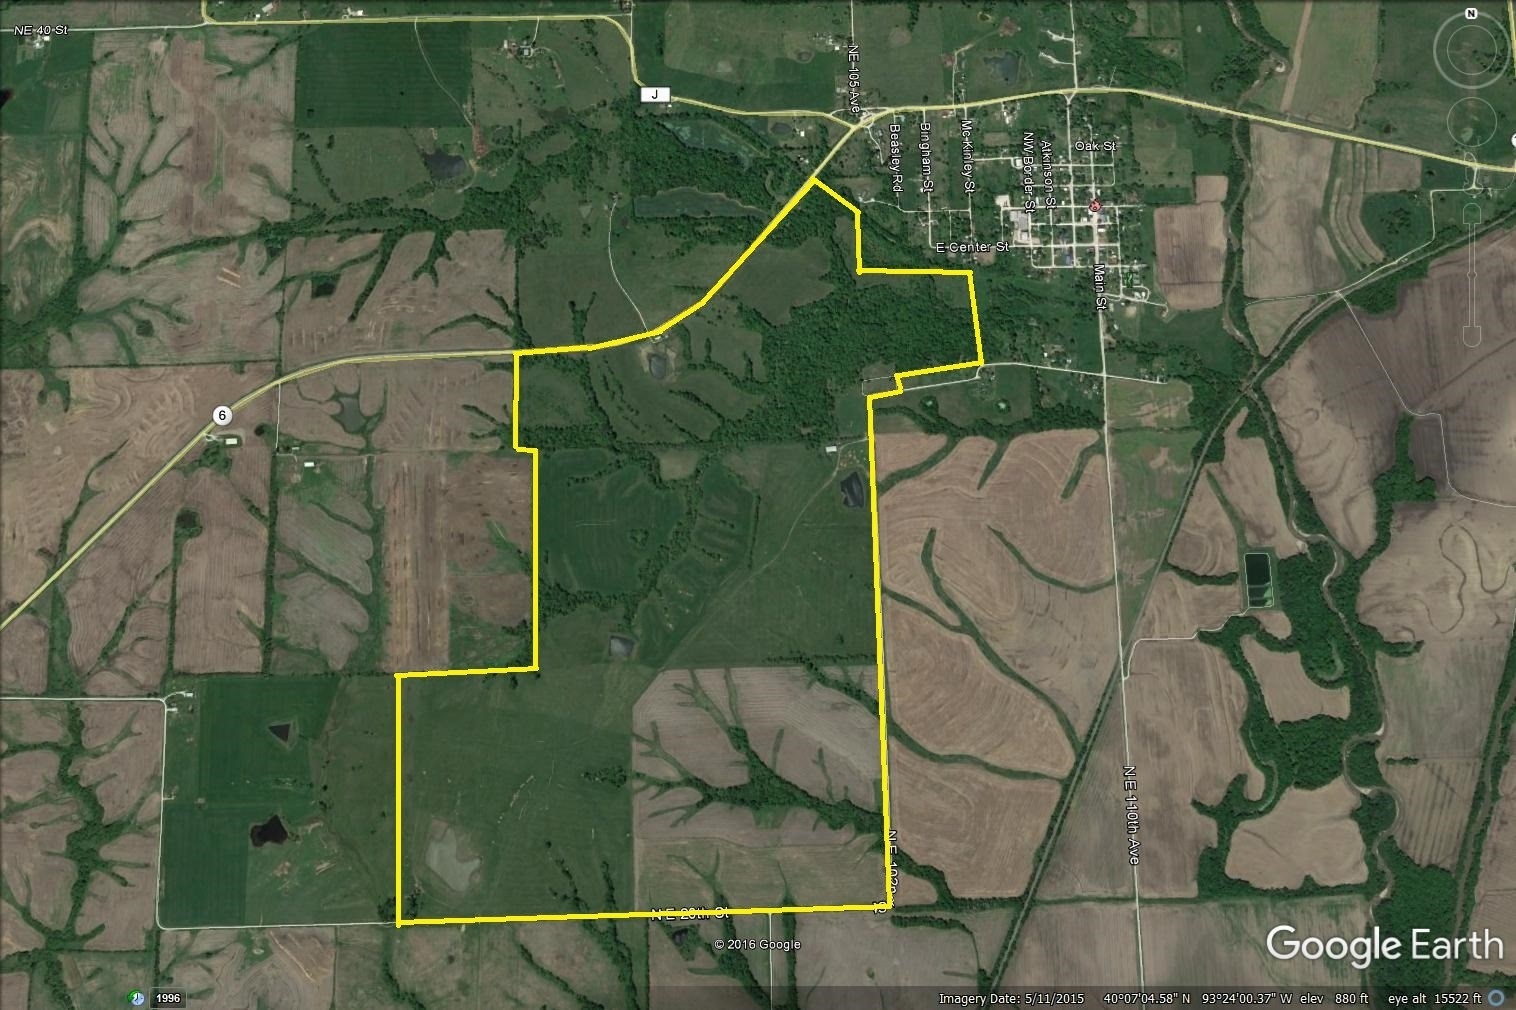 NORTHERN MO HUNTING LEASE AUCTION GRUNDY CO MO, ONLINE ONLY